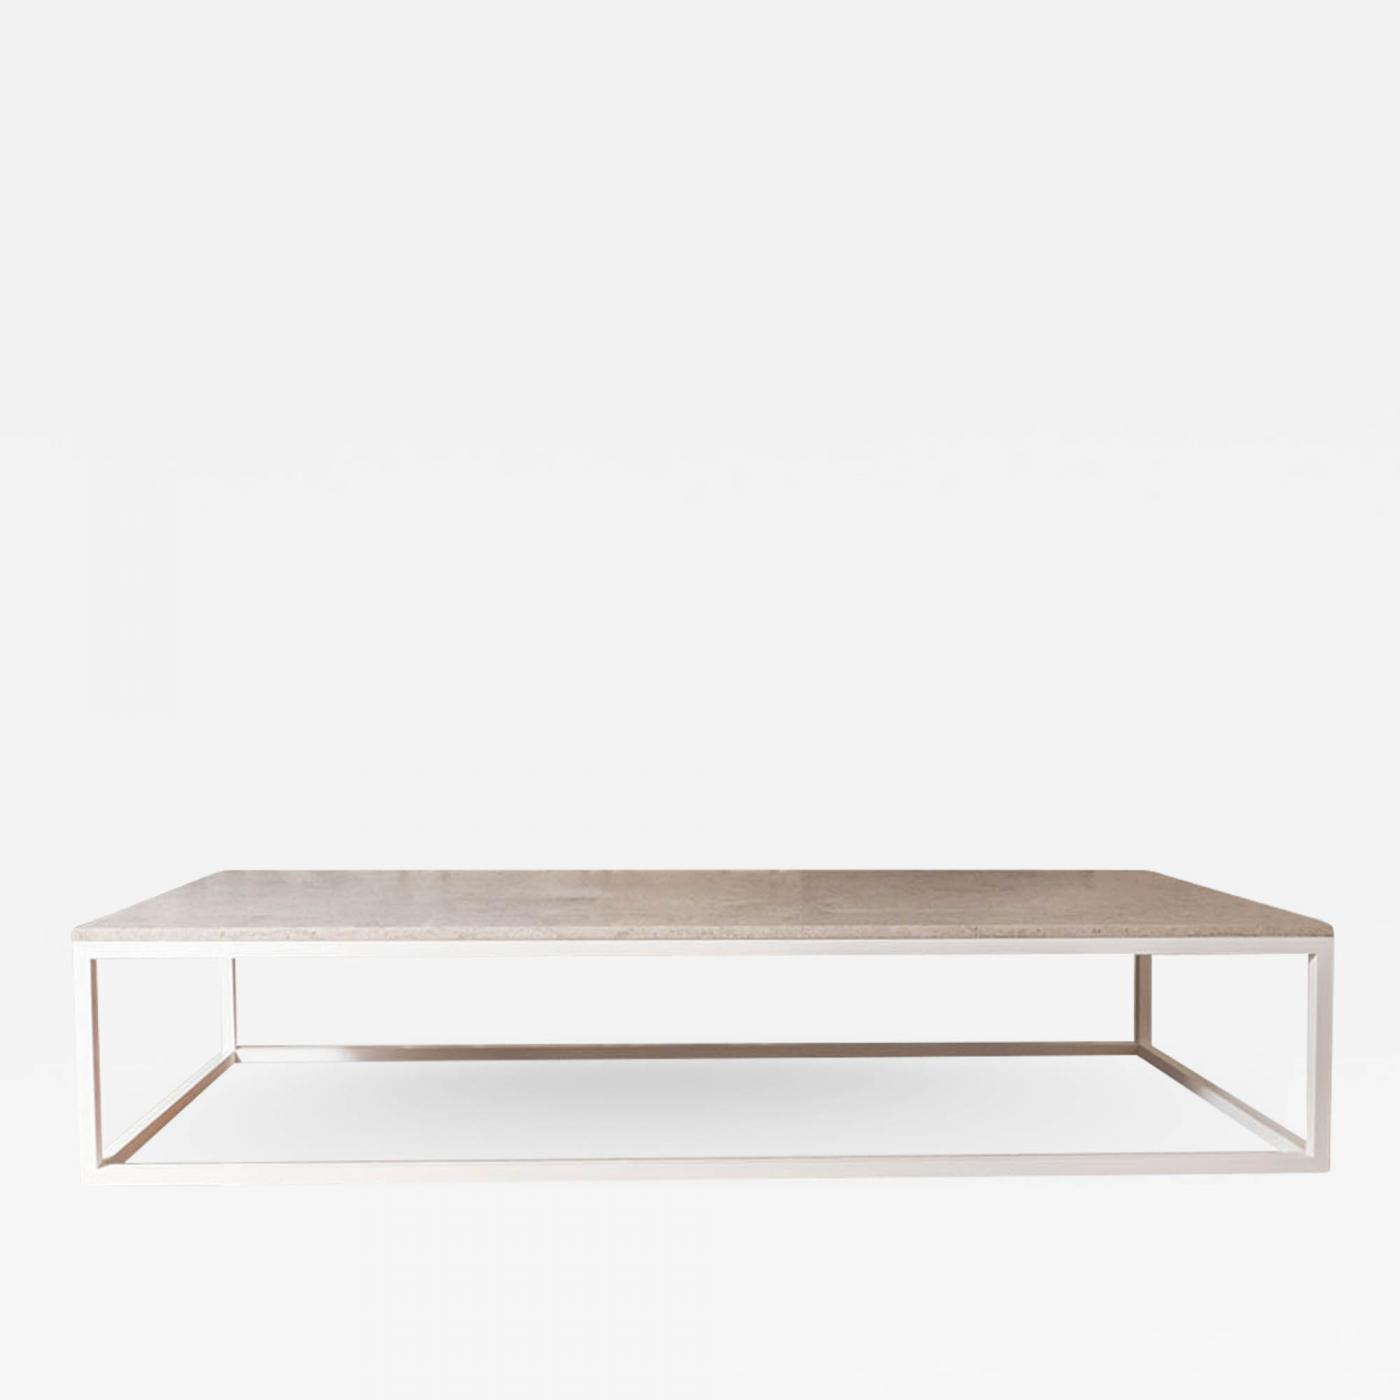 Solid Stainless Steel Coffee Table: Made To Order Stone Top & Solid Stainless